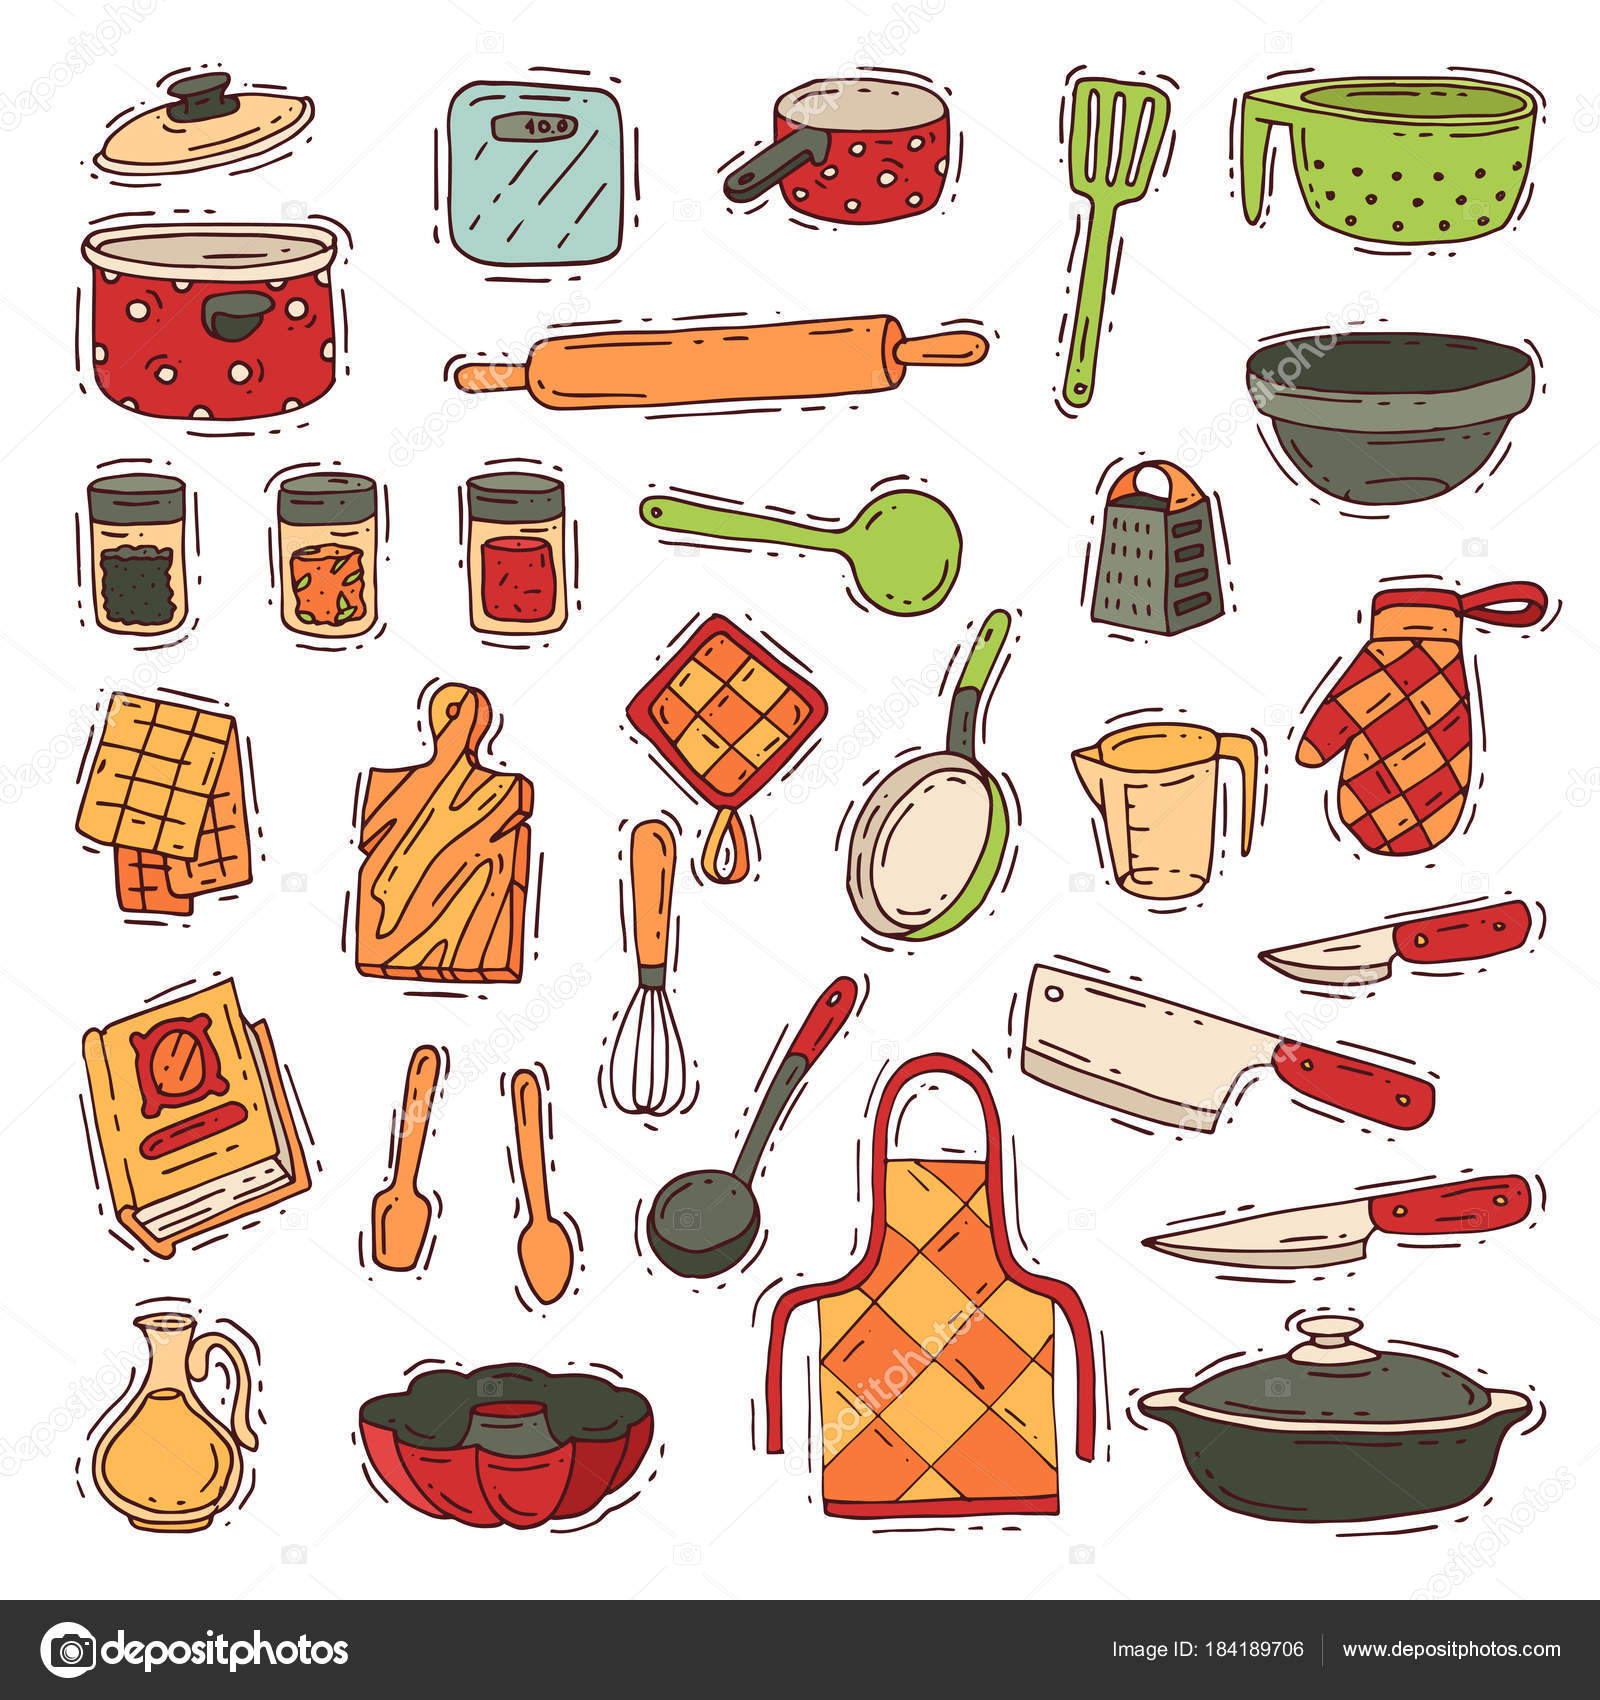 Kitchenware vector cookware for cooking and kitchen utensils or ...